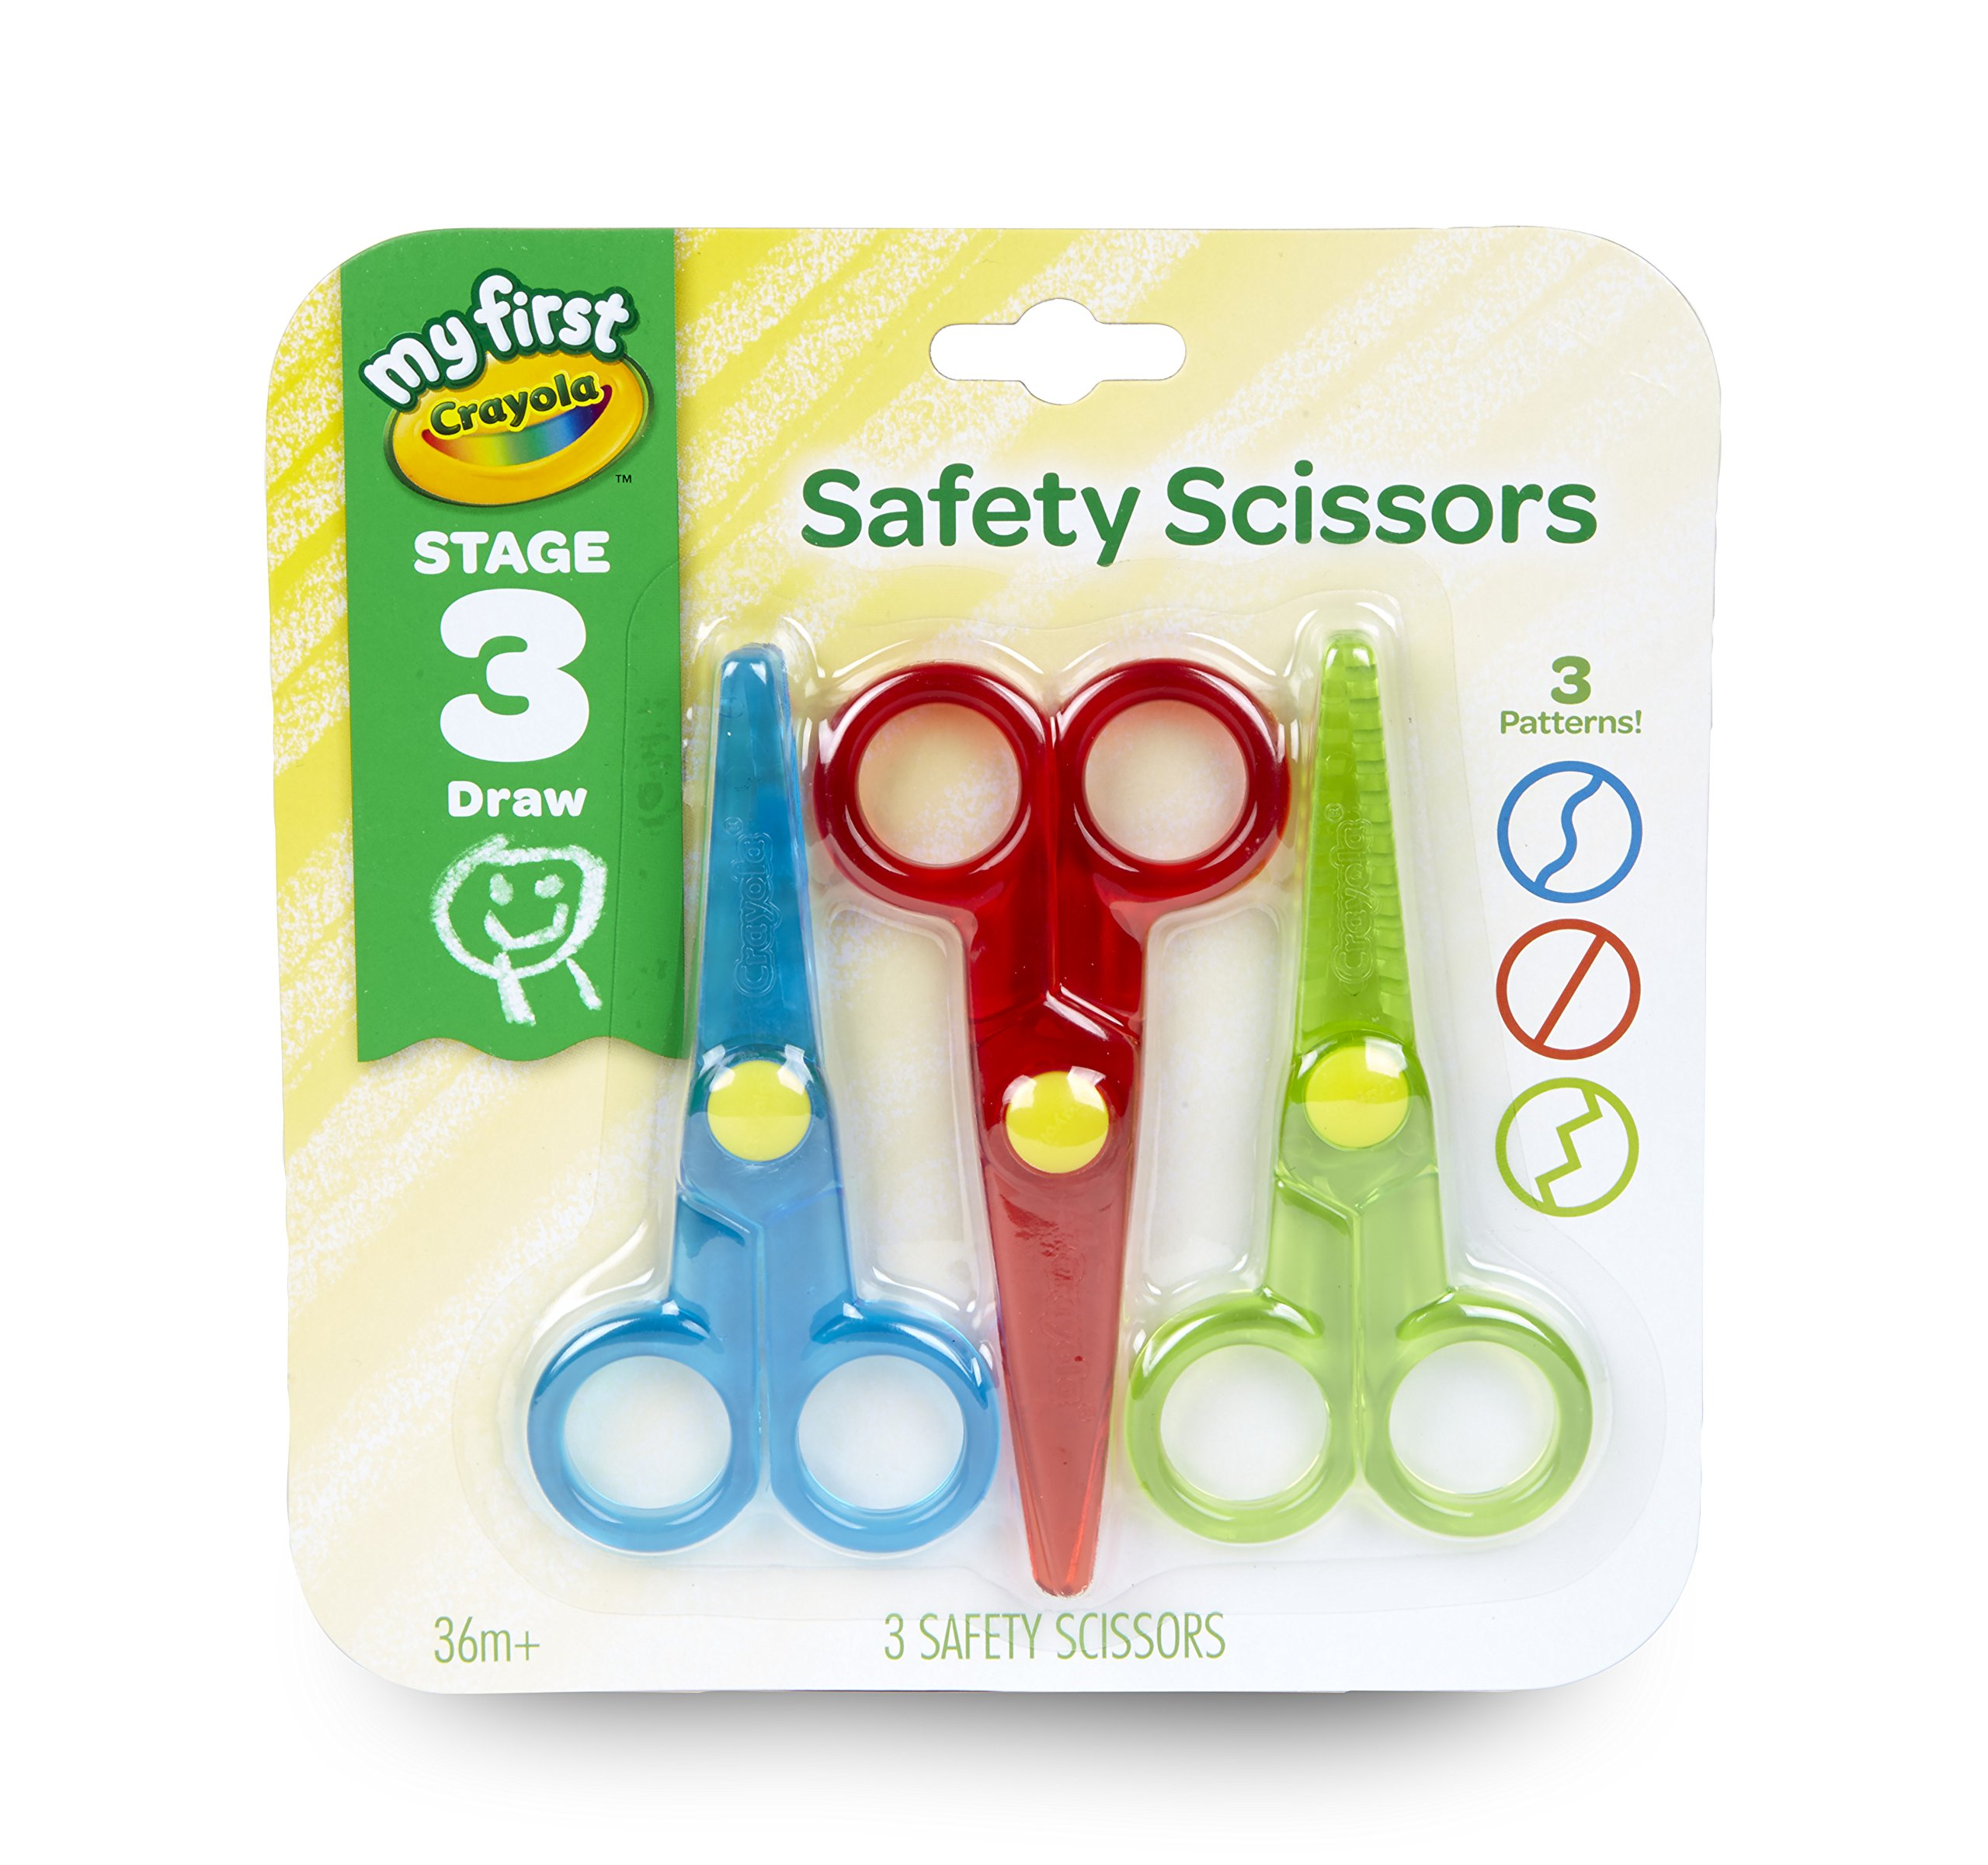 Plastic Scissors Safety Round Head Scissors For Kids Students Paper Cutting Supplies For Kindergarten School Durable Modeling Office & School Supplies